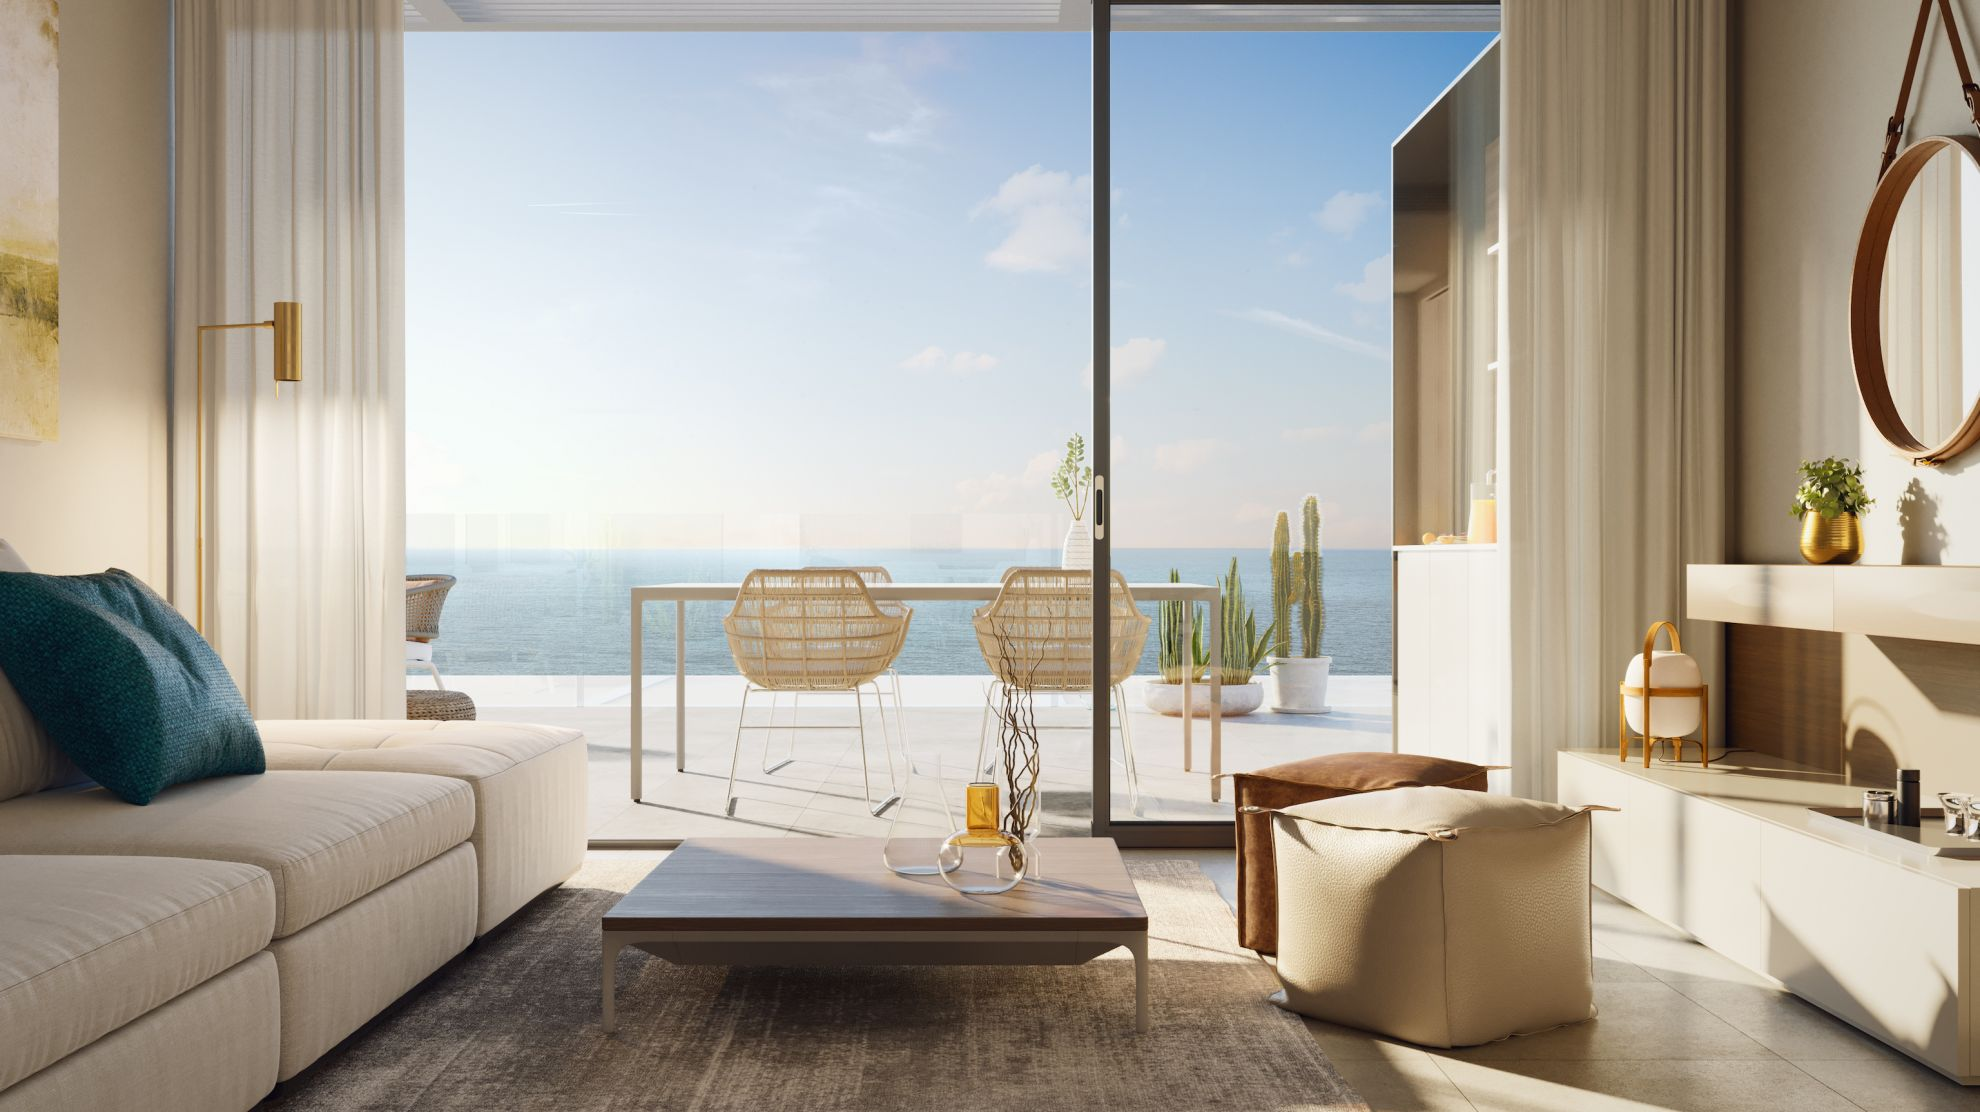 2 and 3 bedroom penthouse-style apartments with big terraces overlookg the sea. House 5 11